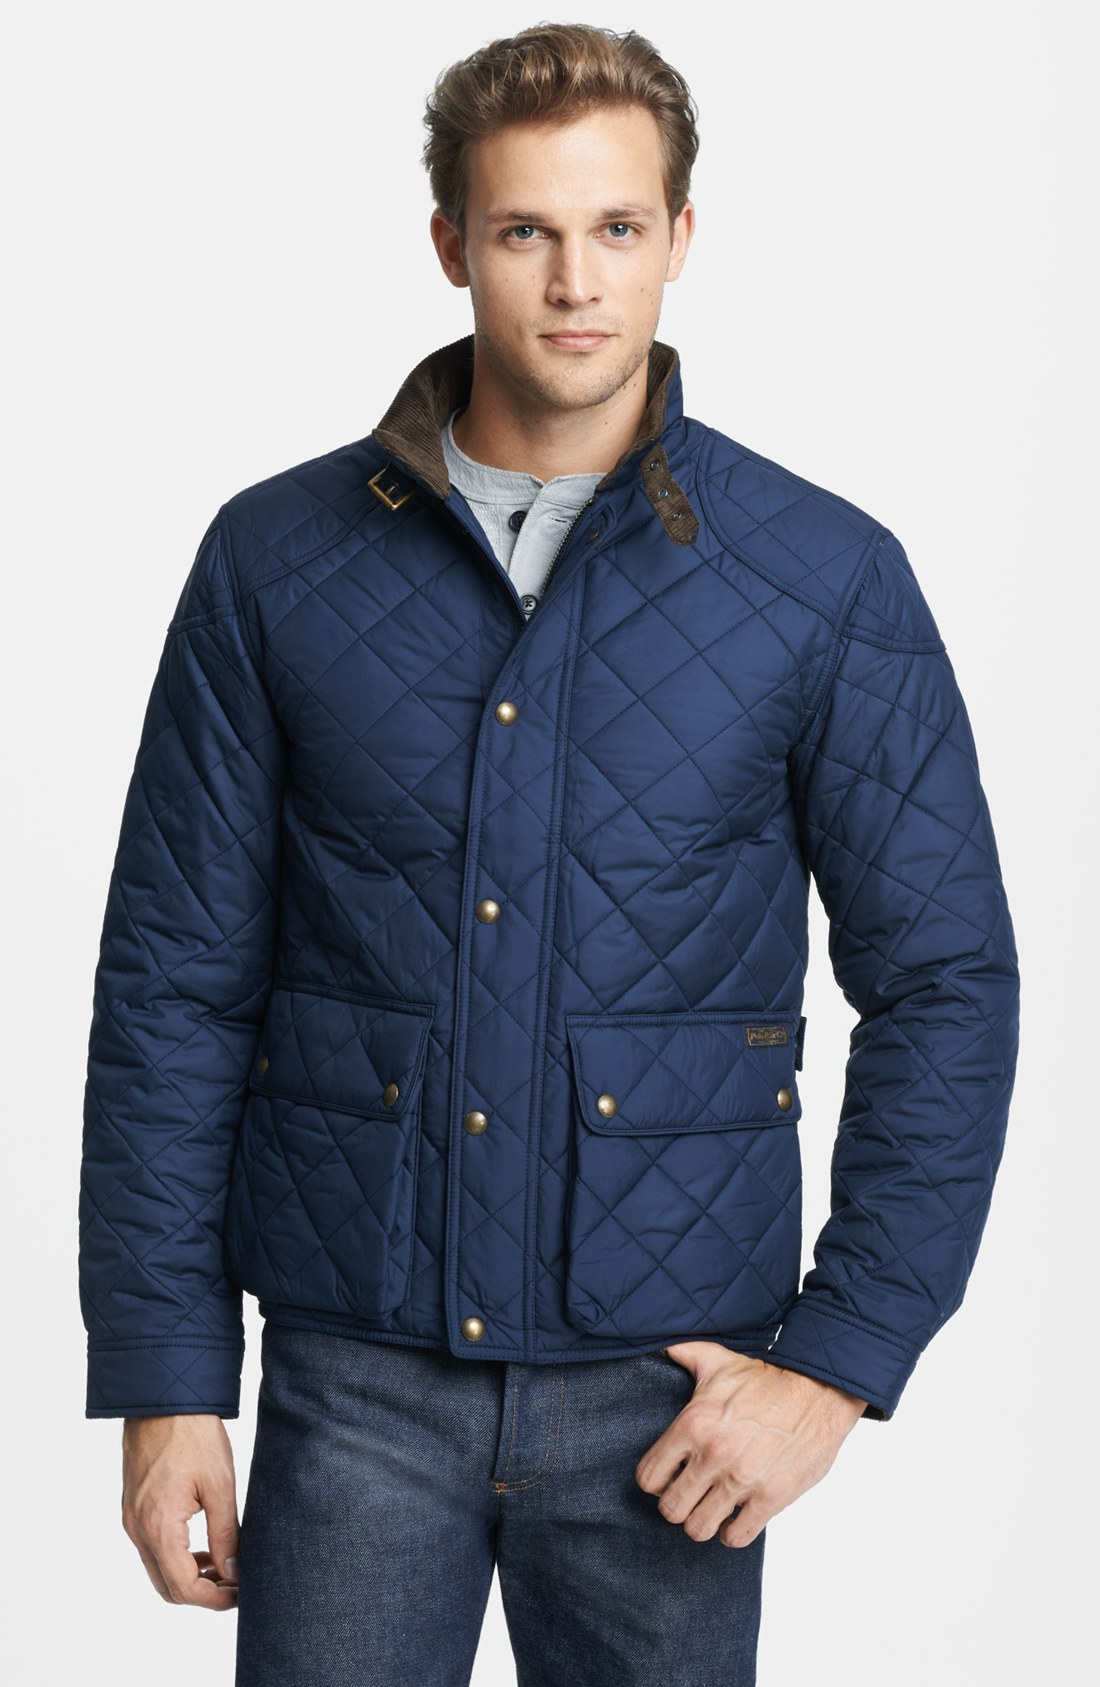 polo ralph lauren cadwell quilted bomber jacket in blue for men. Black Bedroom Furniture Sets. Home Design Ideas